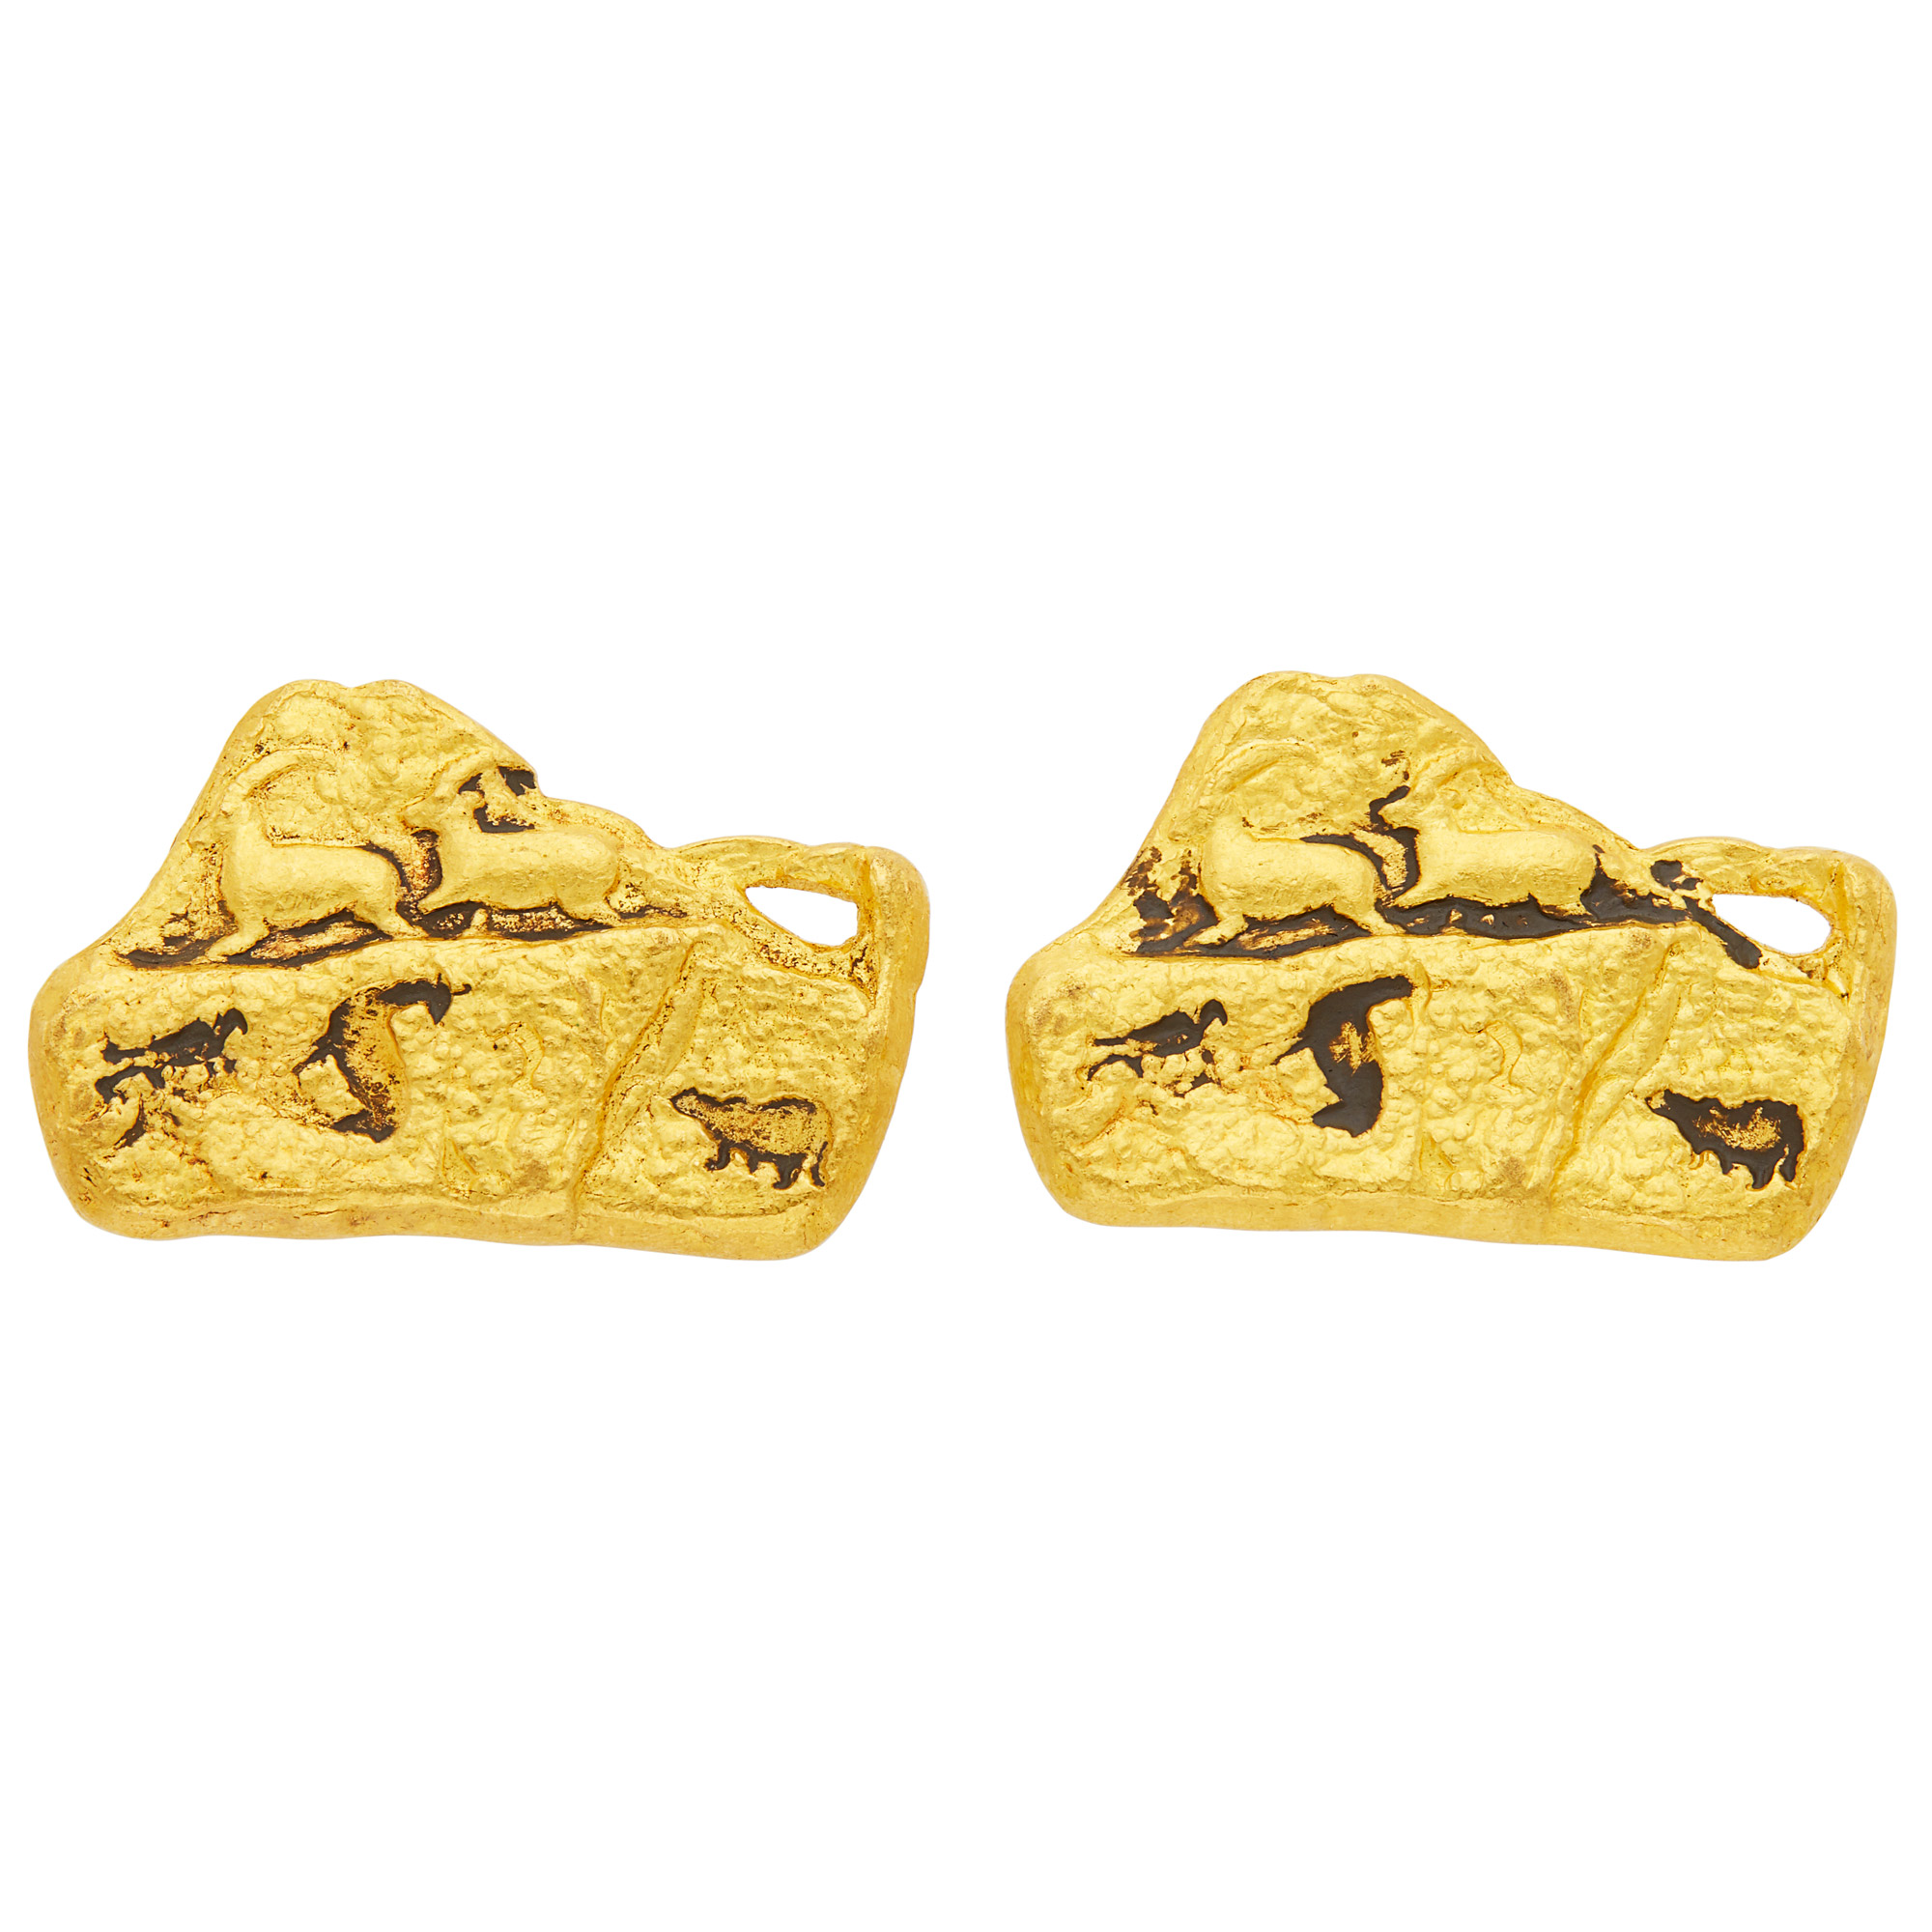 Lot image - Two Gold Petroglyph Brooches